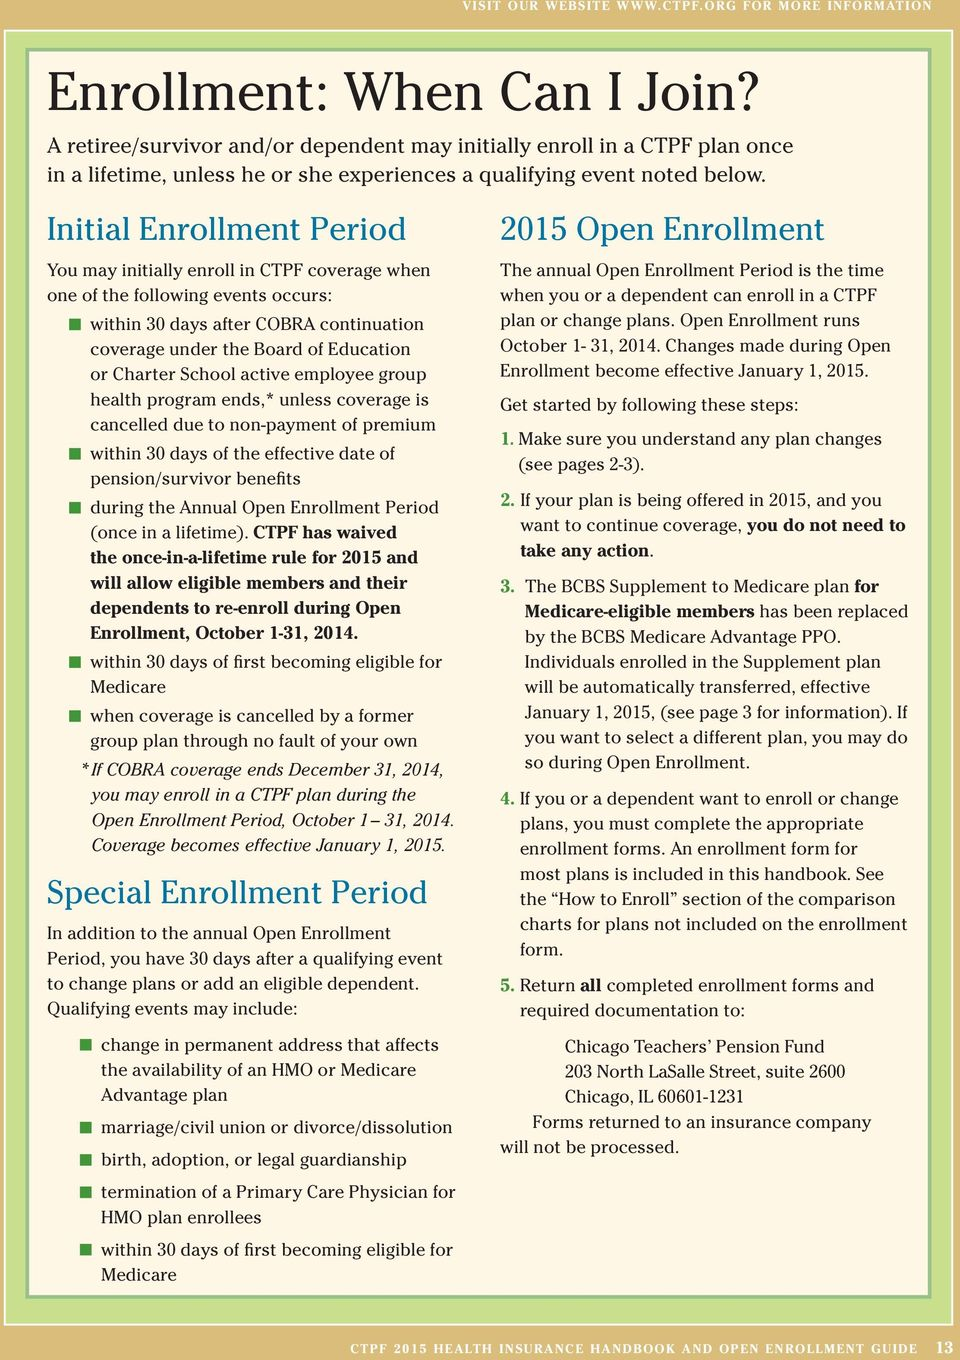 Initial Enrollment Period You may initially enroll in CTPF coverage when one of the following events occurs: n within 30 days after COBRA continuation coverage under the Board of Education or Charter